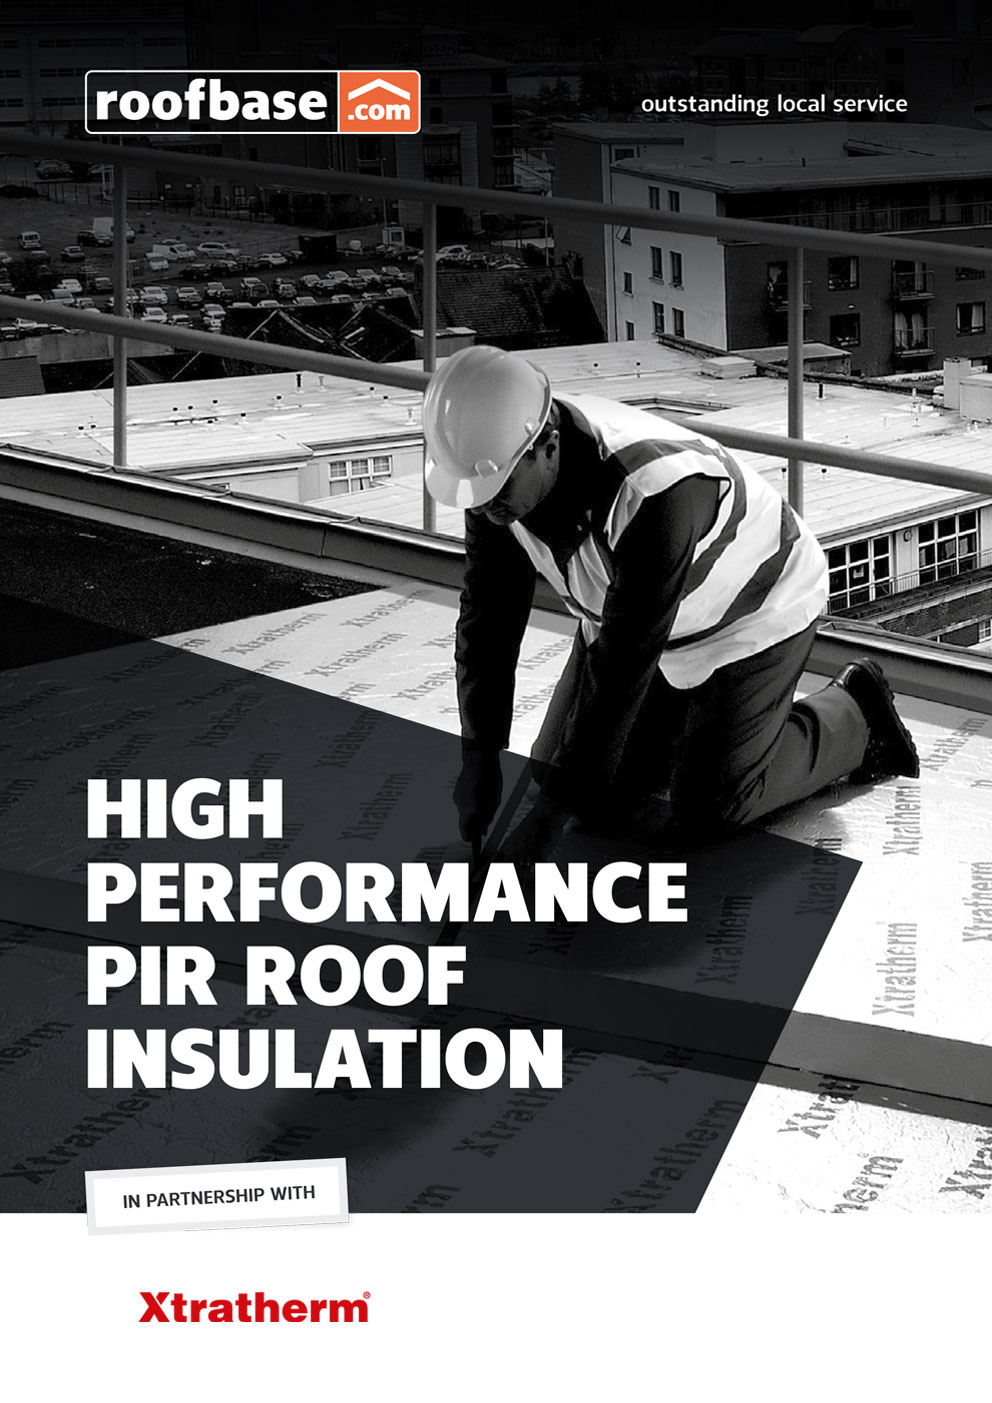 https://roofbase.com/wp-content/uploads/2019/01/Xtratherm-brochure-front.jpg